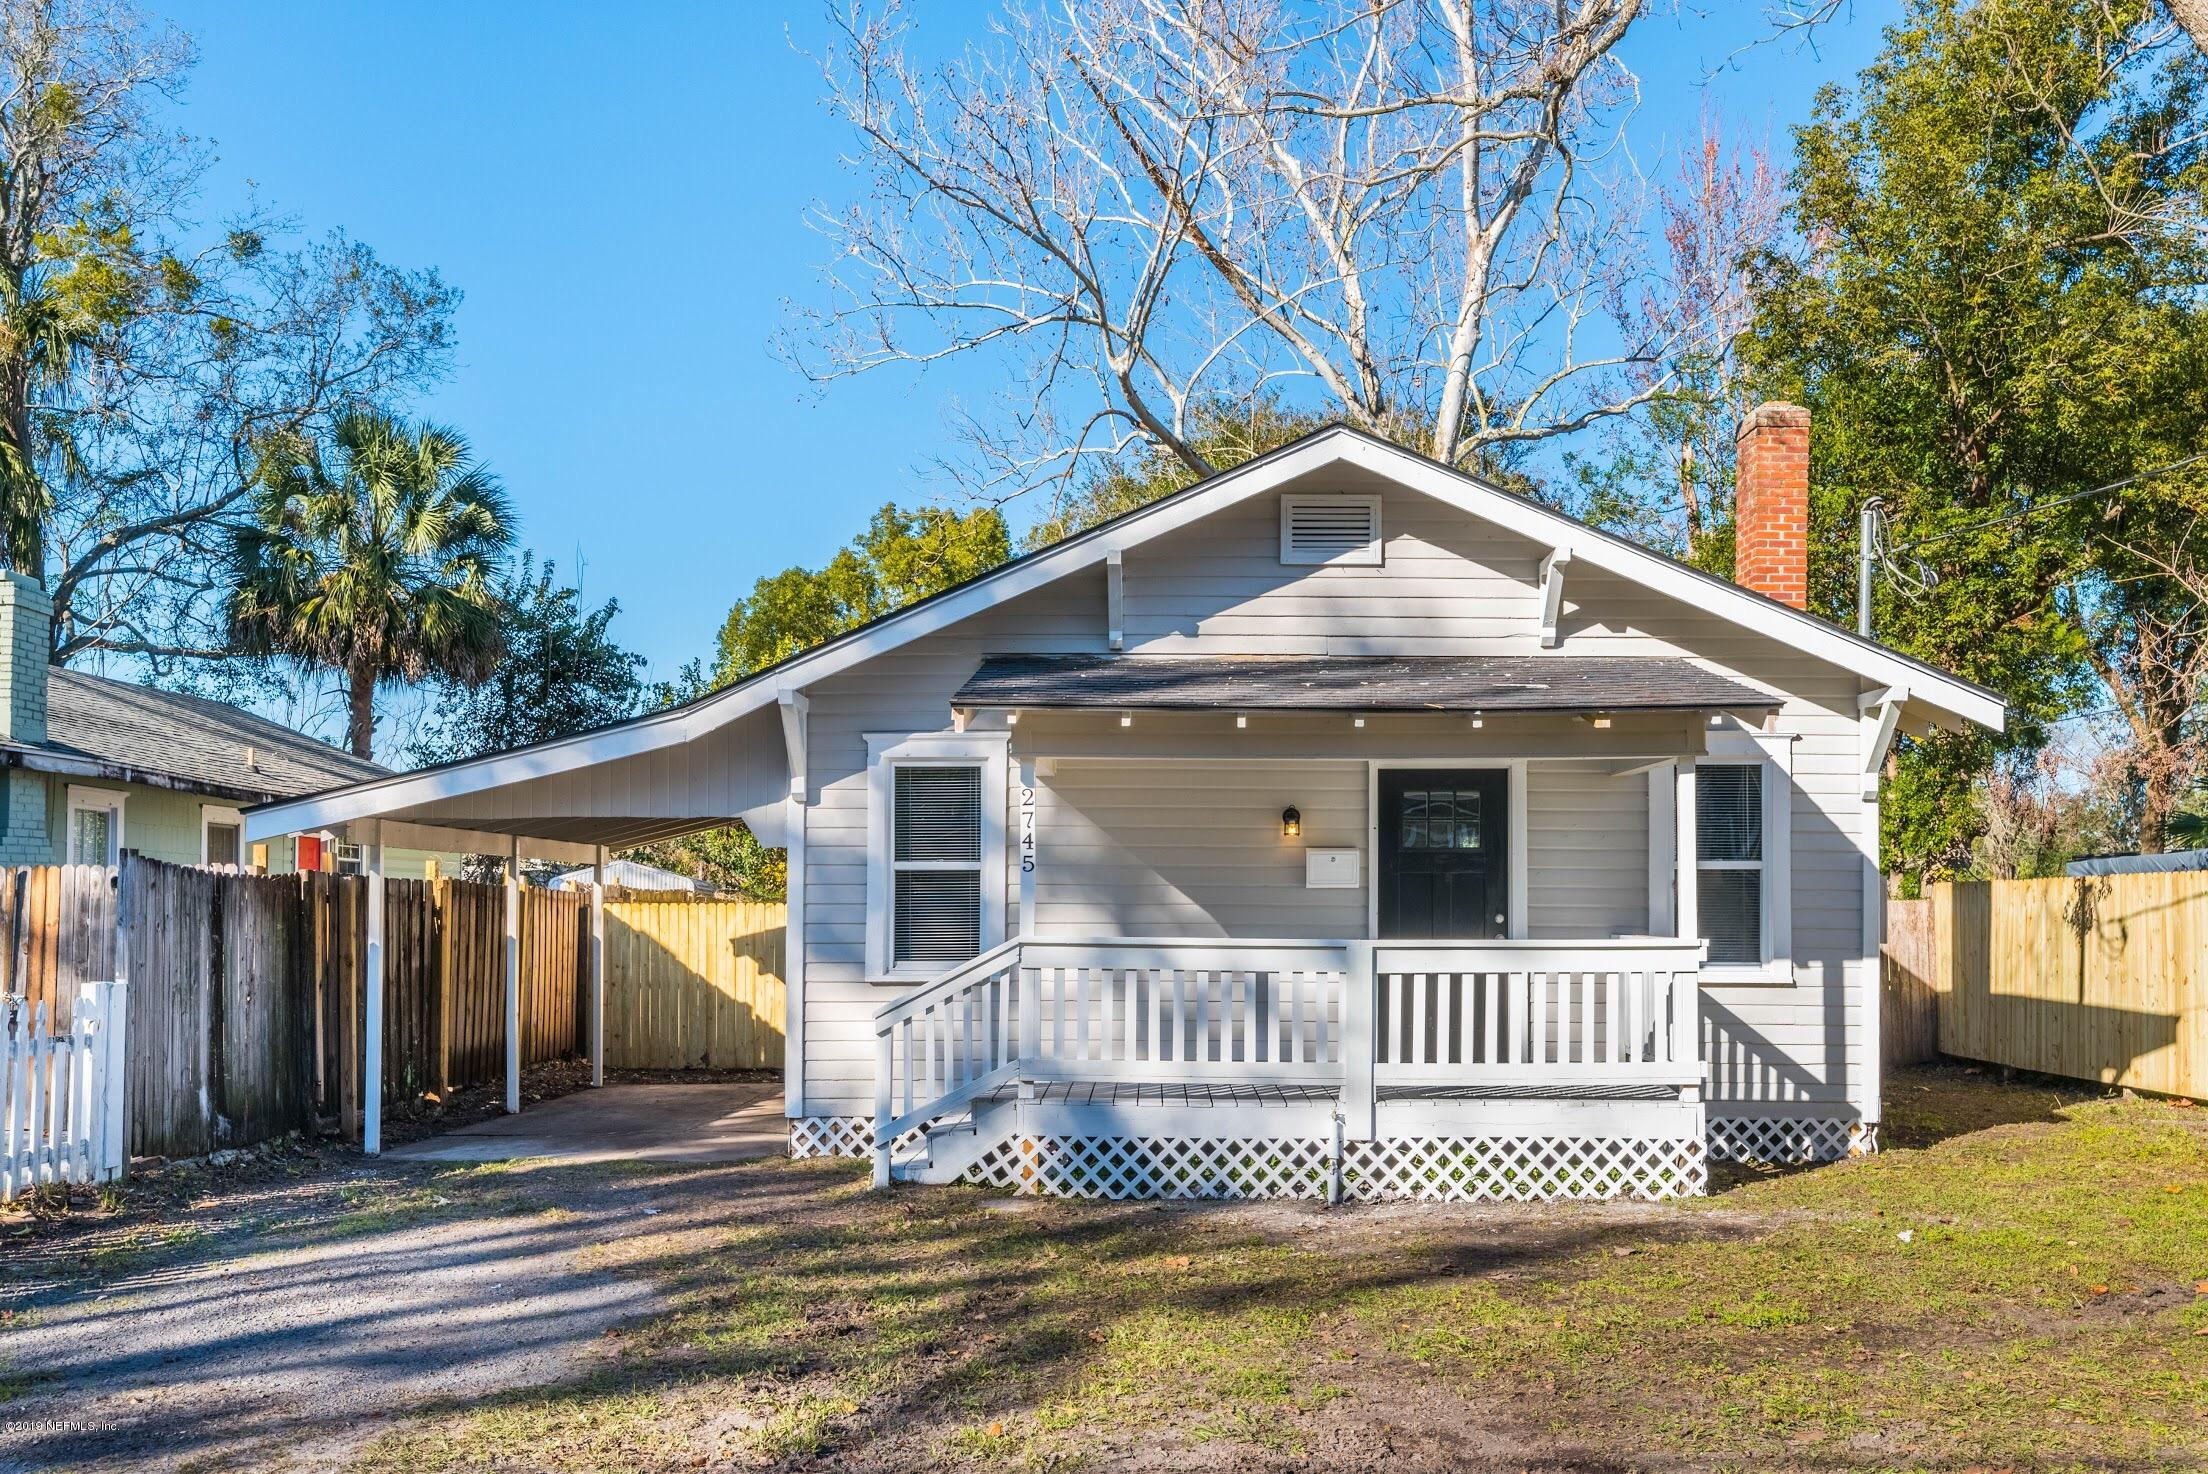 2745 GILMORE, JACKSONVILLE, FLORIDA 32205, 2 Bedrooms Bedrooms, ,2 BathroomsBathrooms,Residential - single family,For sale,GILMORE,974134